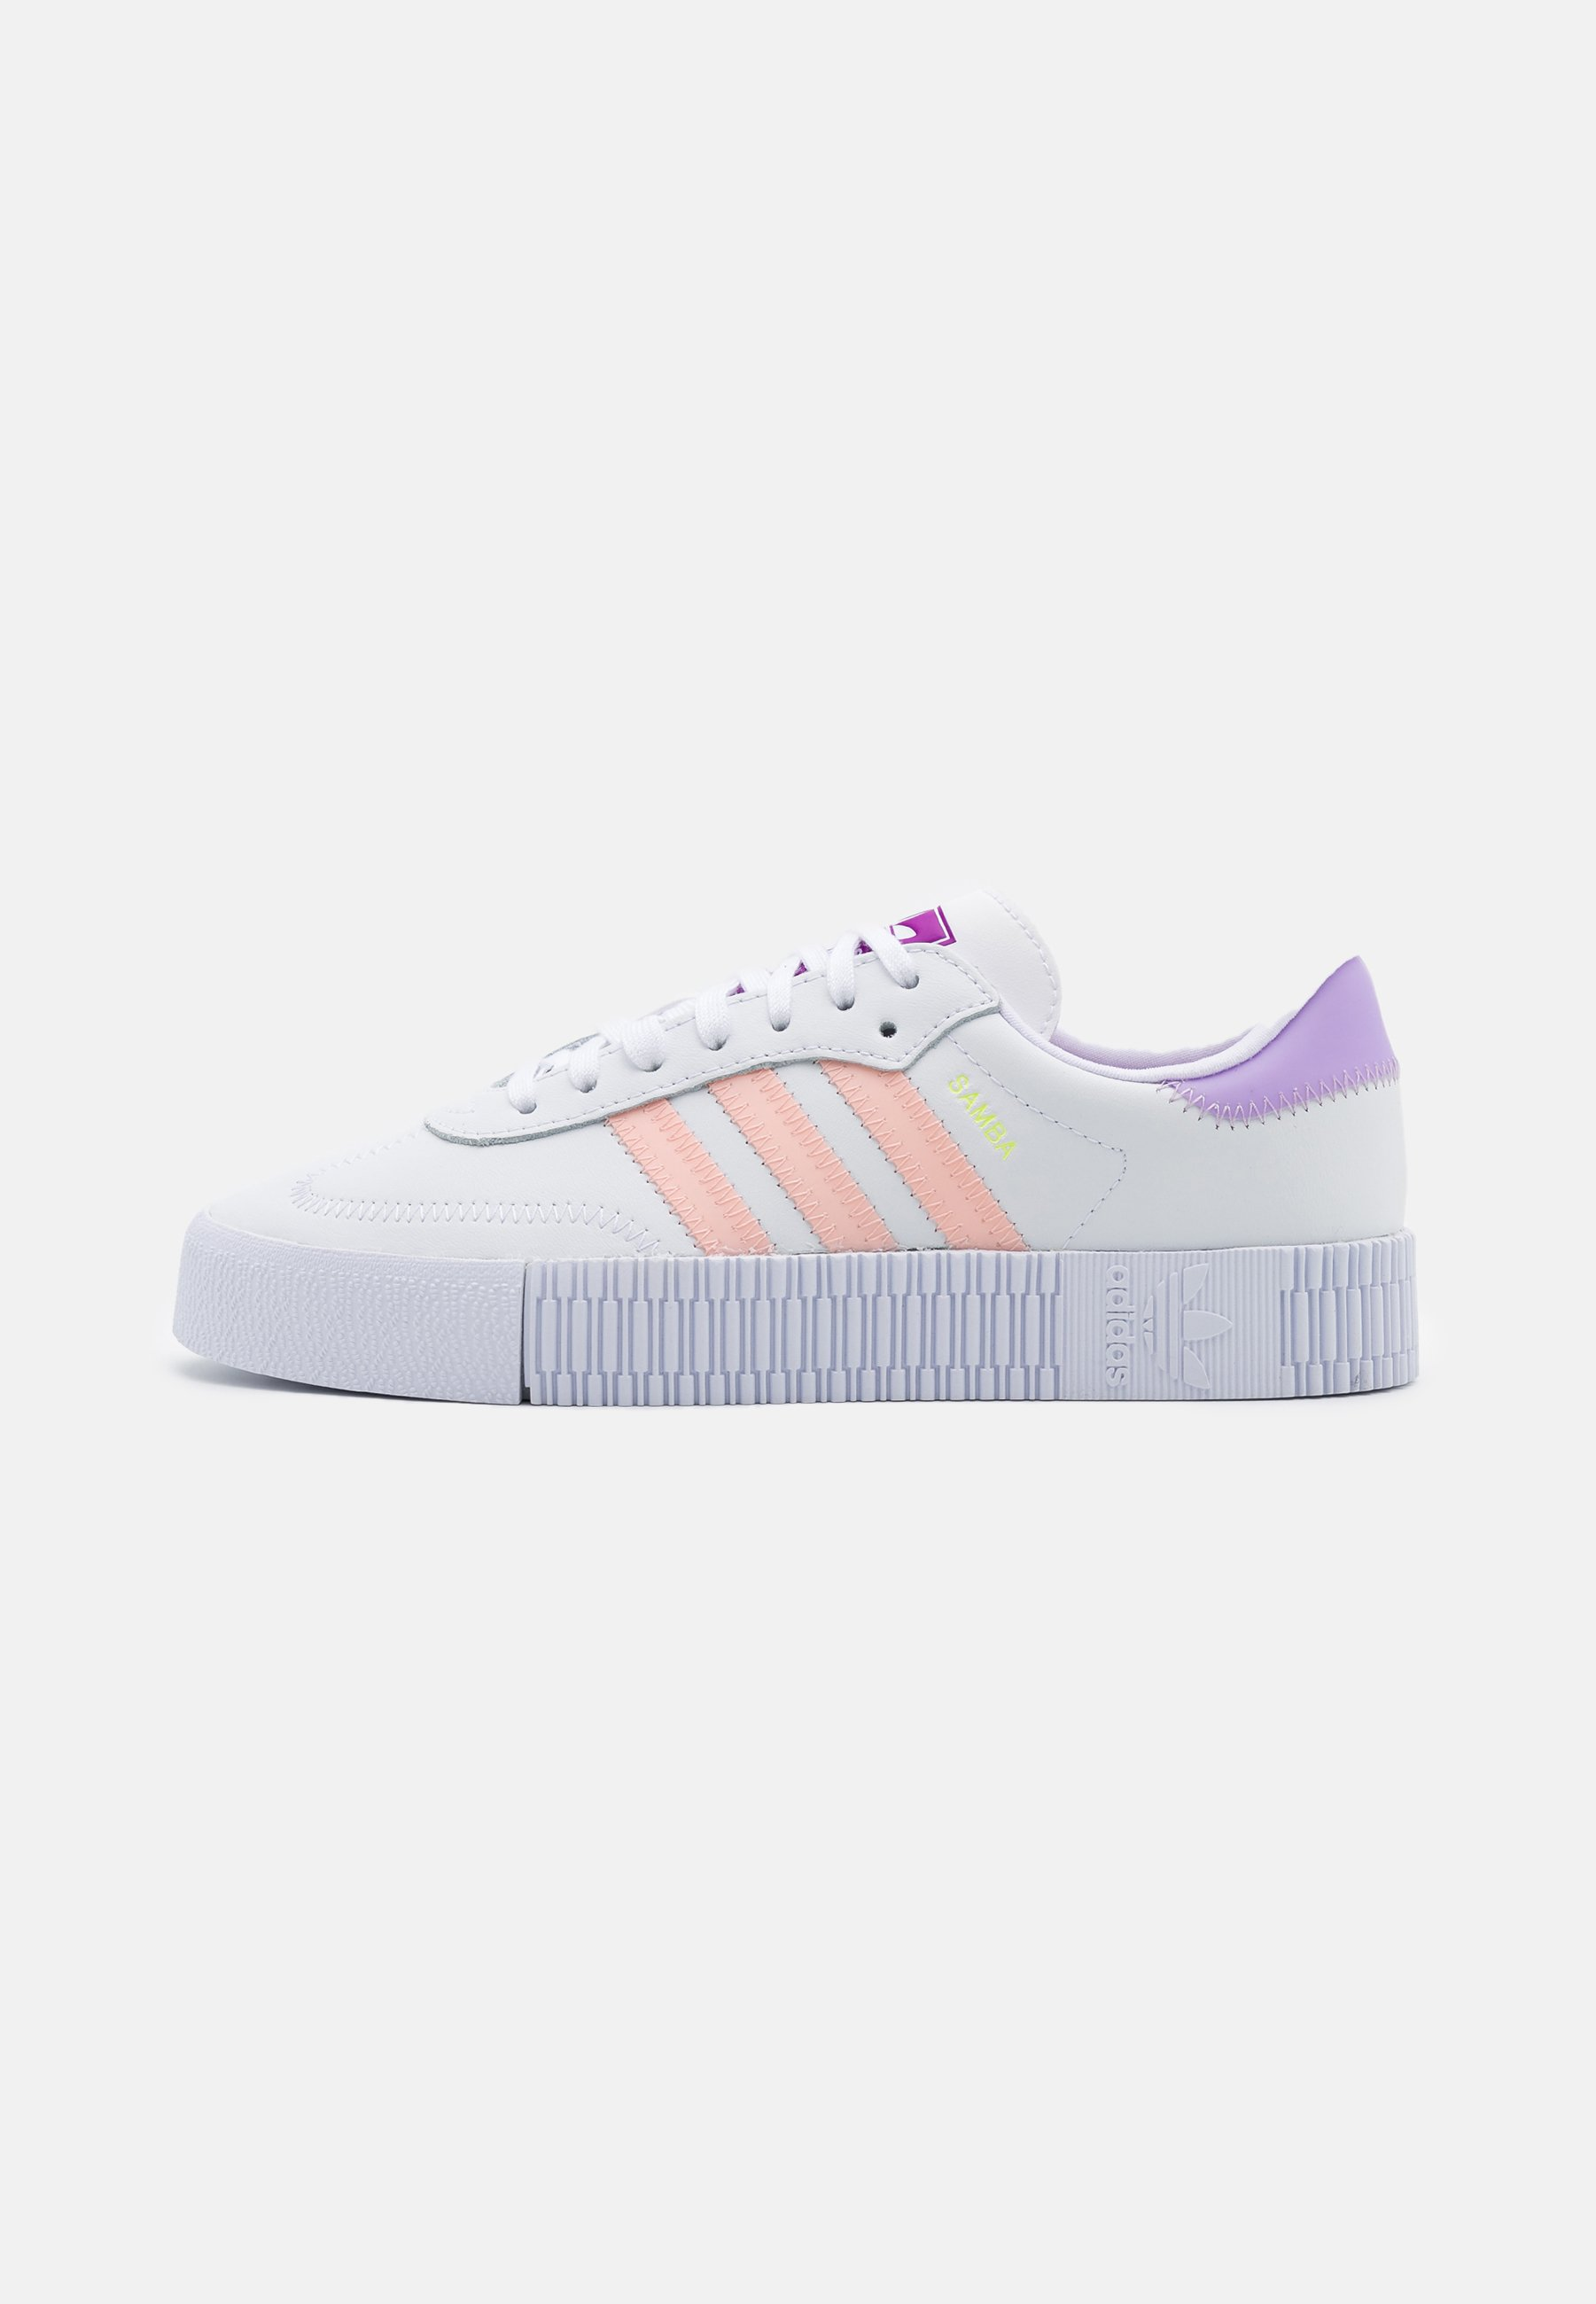 Adidas Originals Sambarose Sports Inspired Shoes - Joggesko Footwear White/hazel Coral/shock Purple/hvit